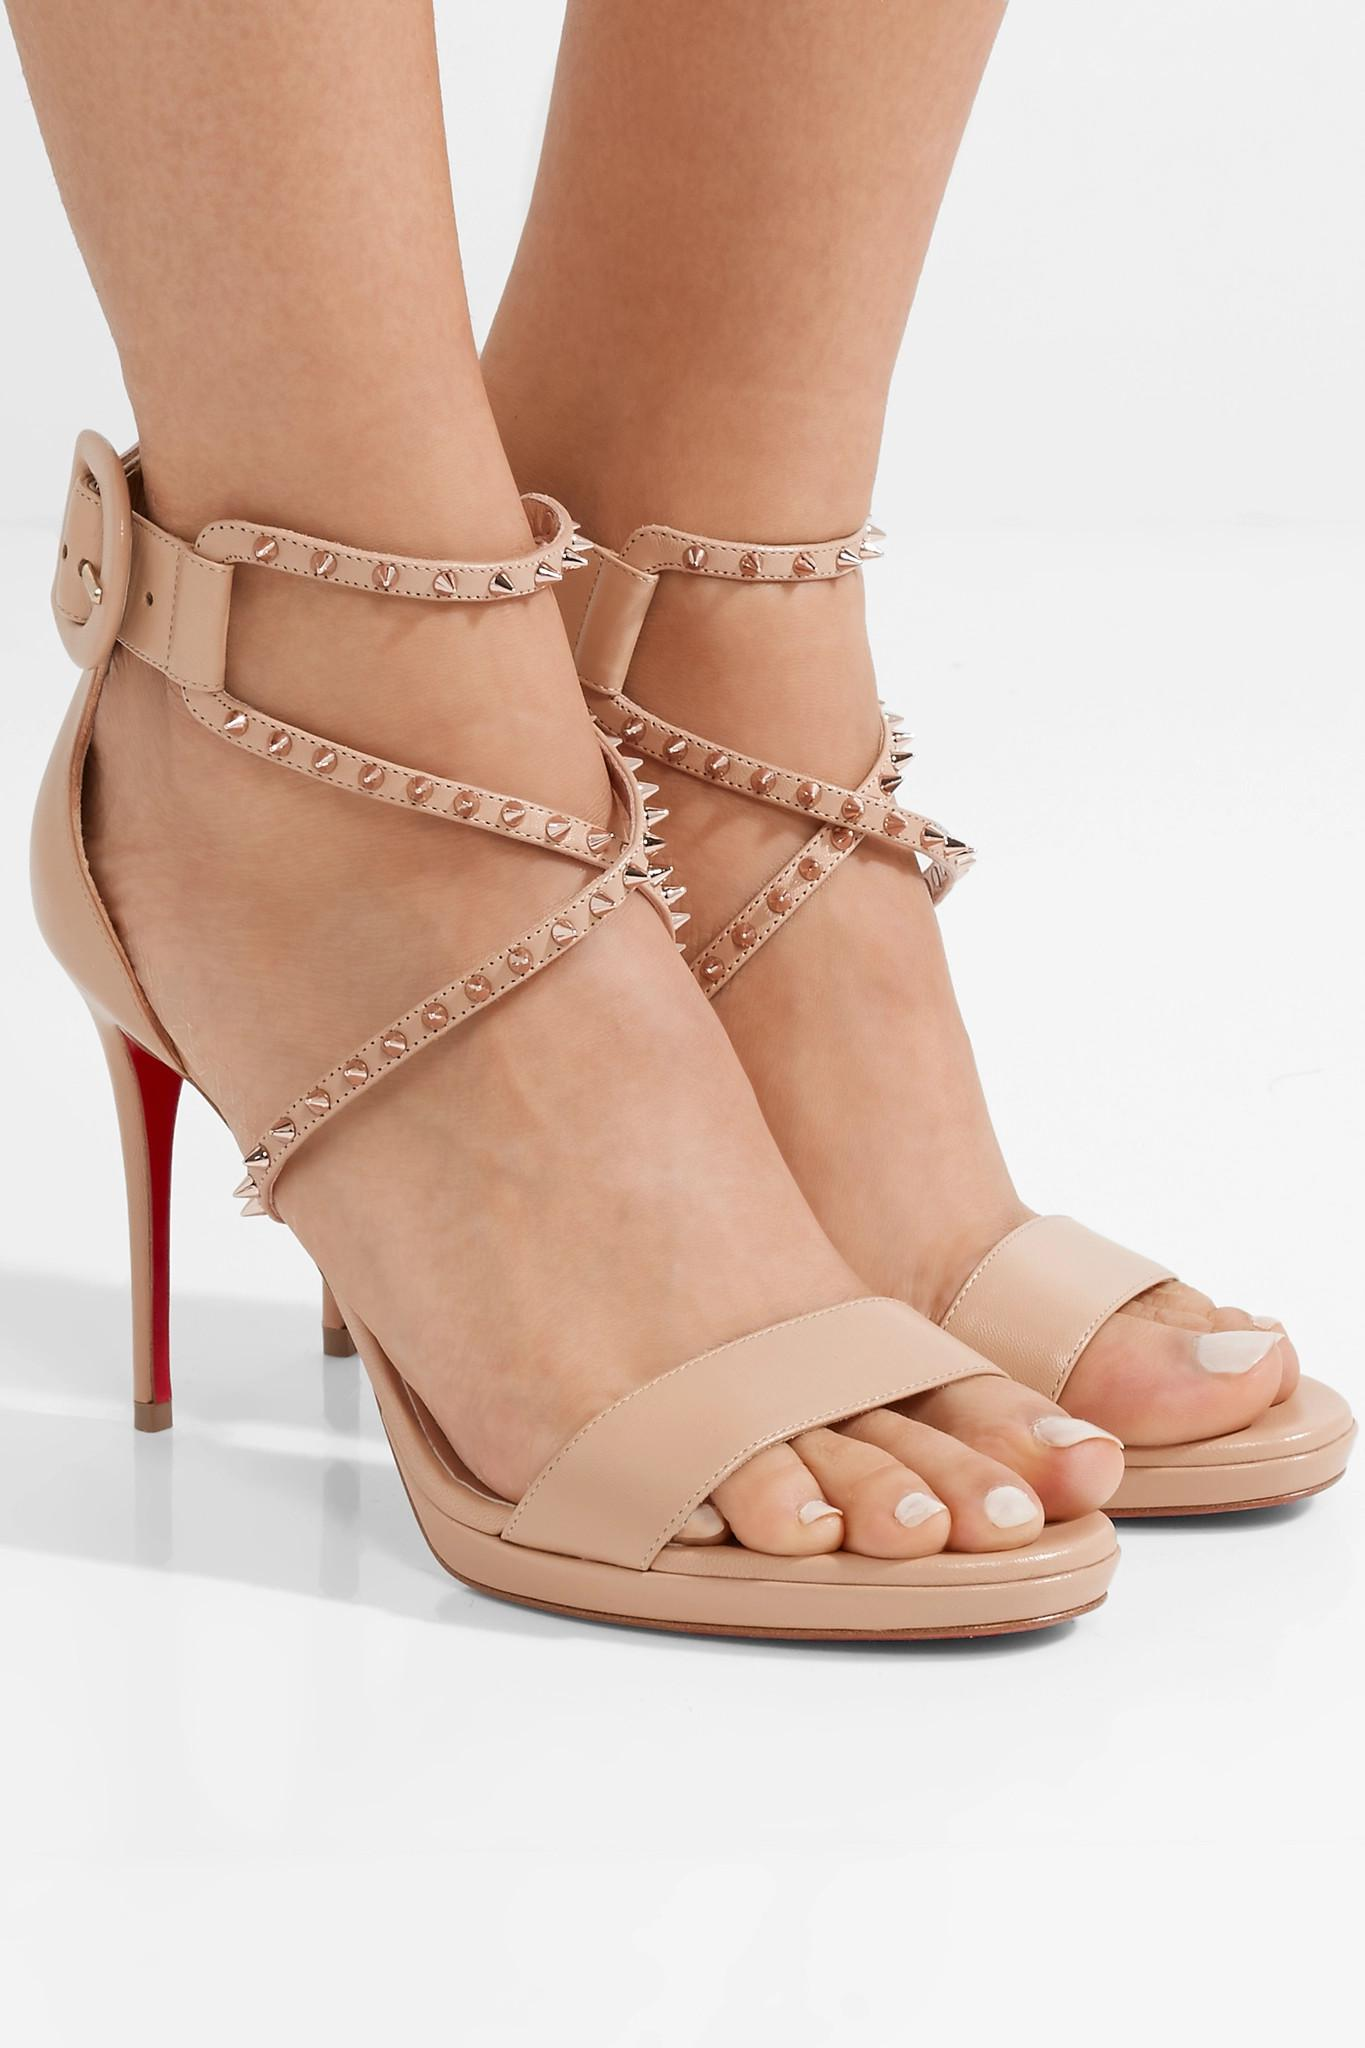 6396c5c0eed1 Christian Louboutin - Multicolor Choca Lux 100 Studded Leather Sandals -  Lyst. View fullscreen